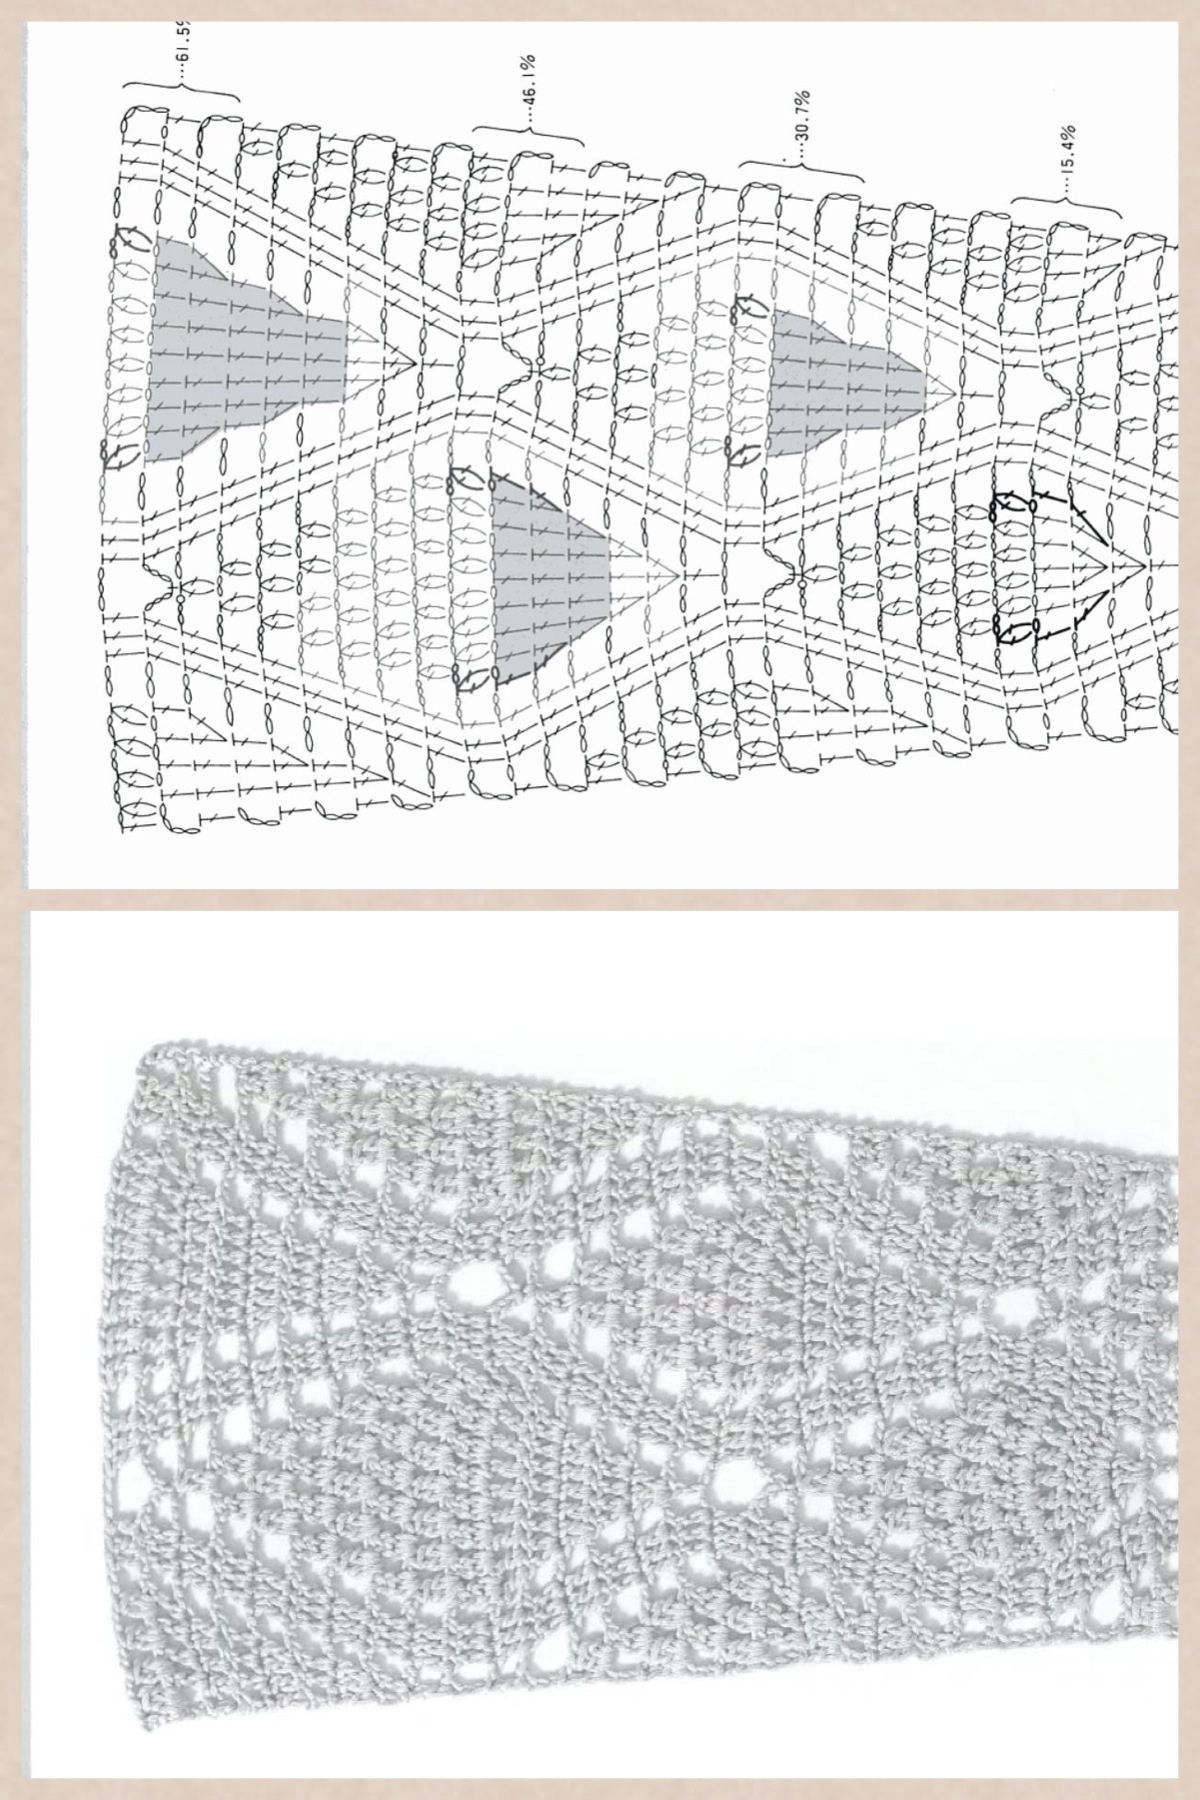 Crochet diagram pattern to make a skirt or the dress portion of a ...